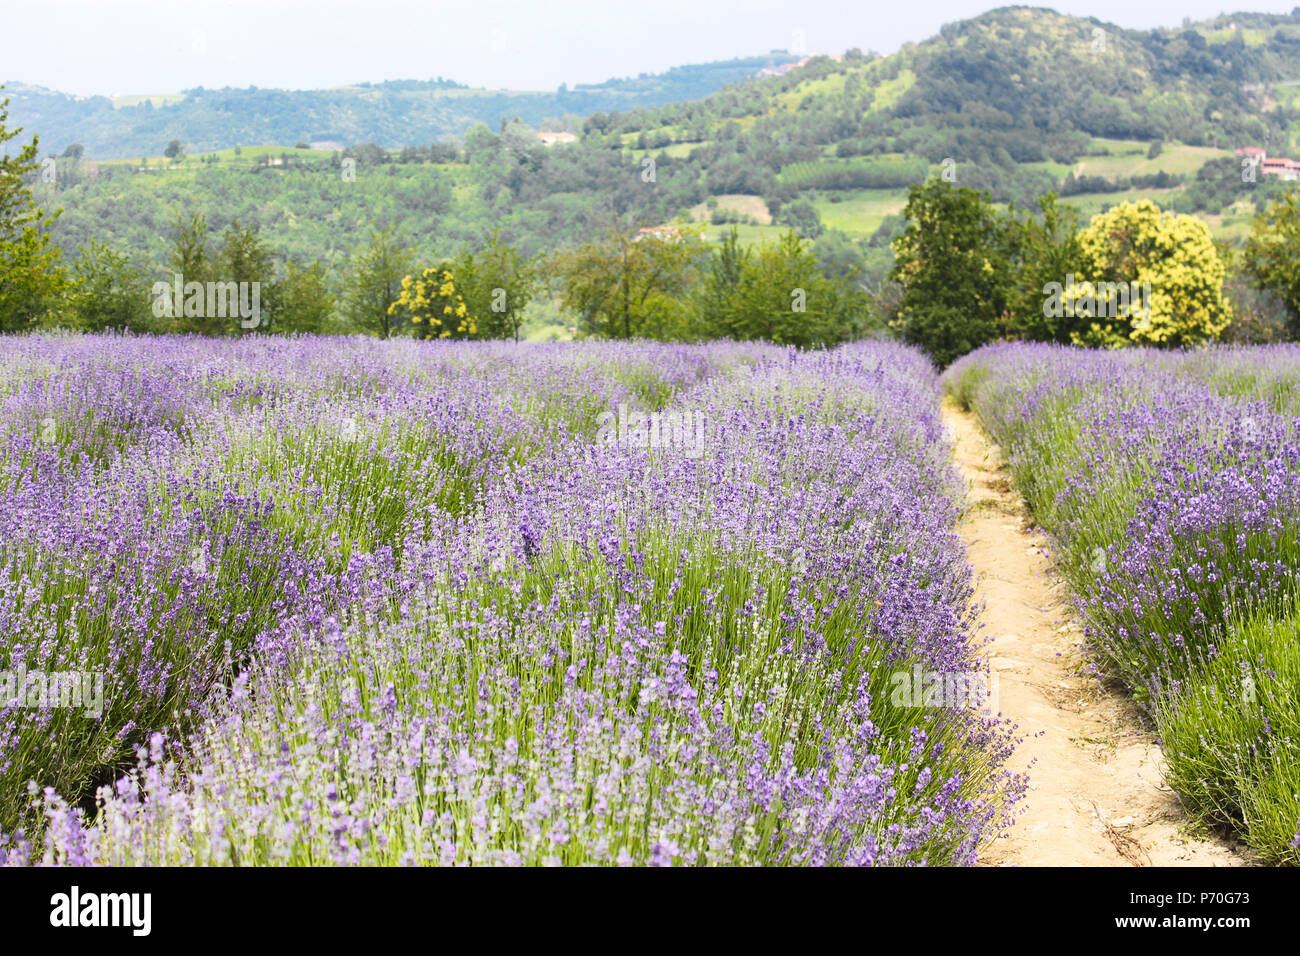 Field of lavender in bloom in France Stock Photo